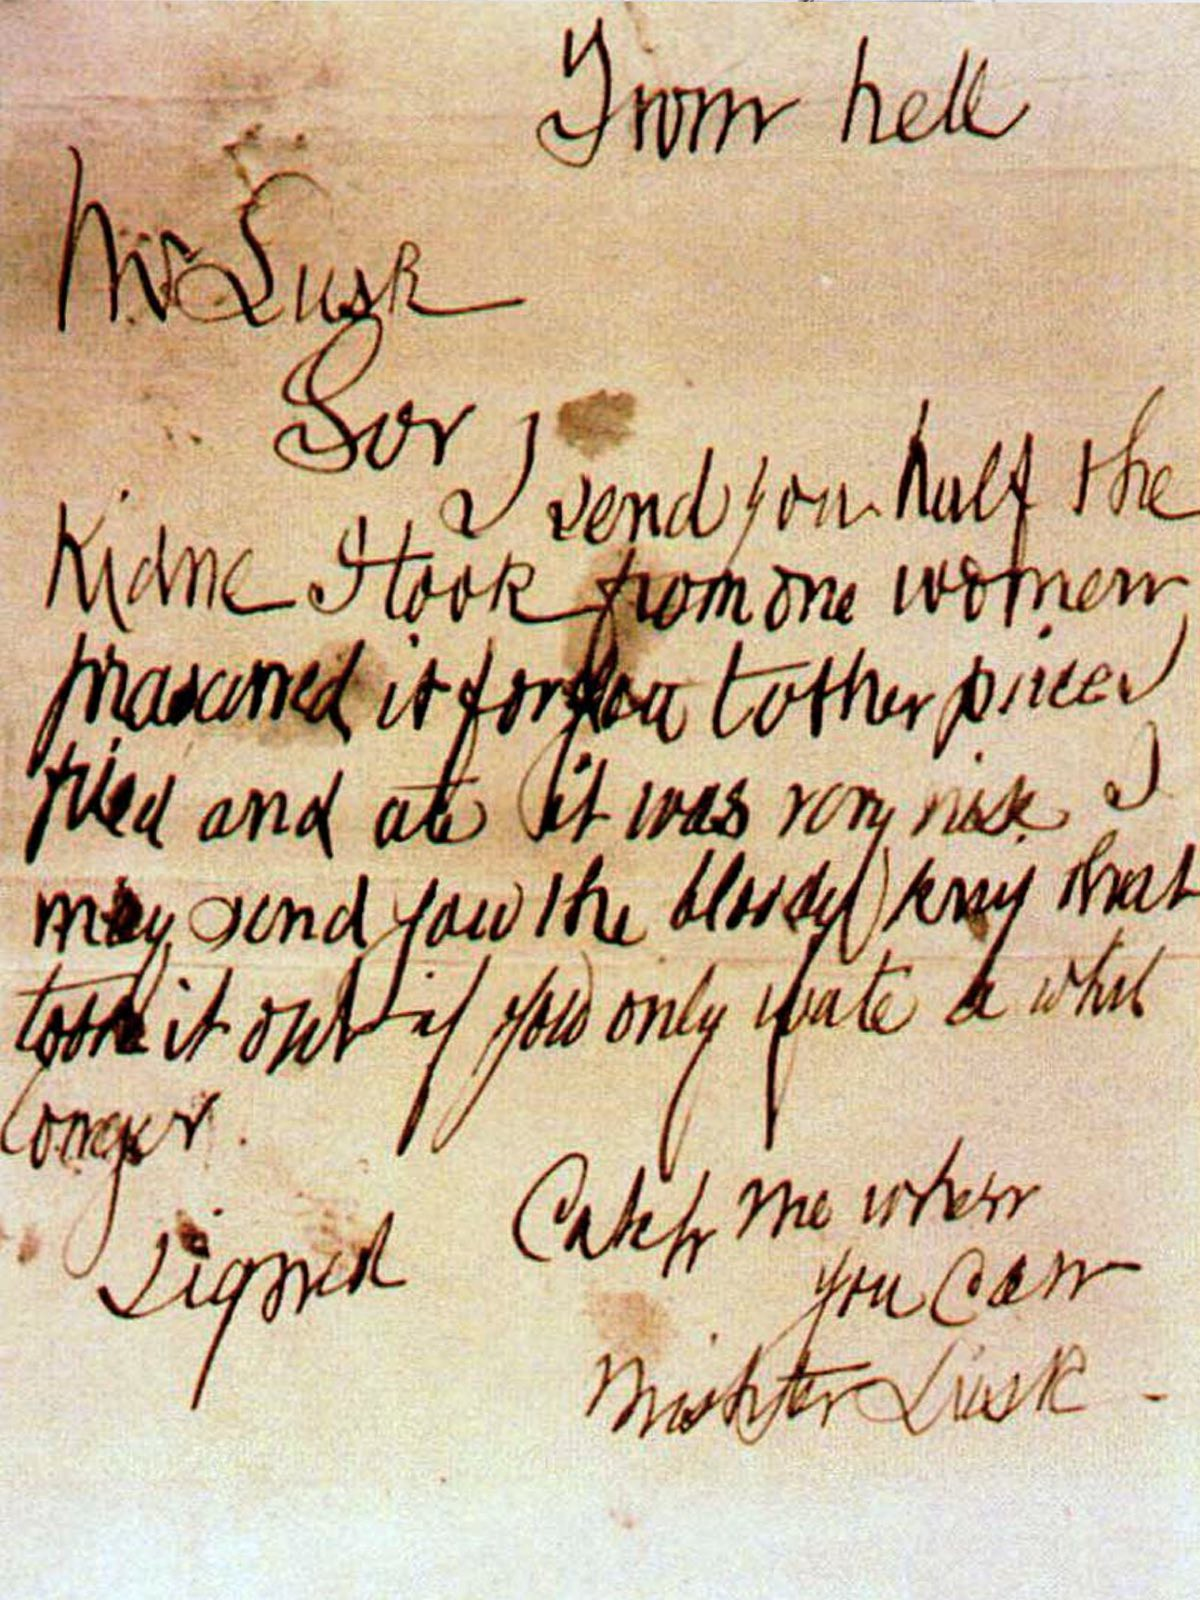 All of the letter's attributed to Jack the Ripper are thought to be hoaxes